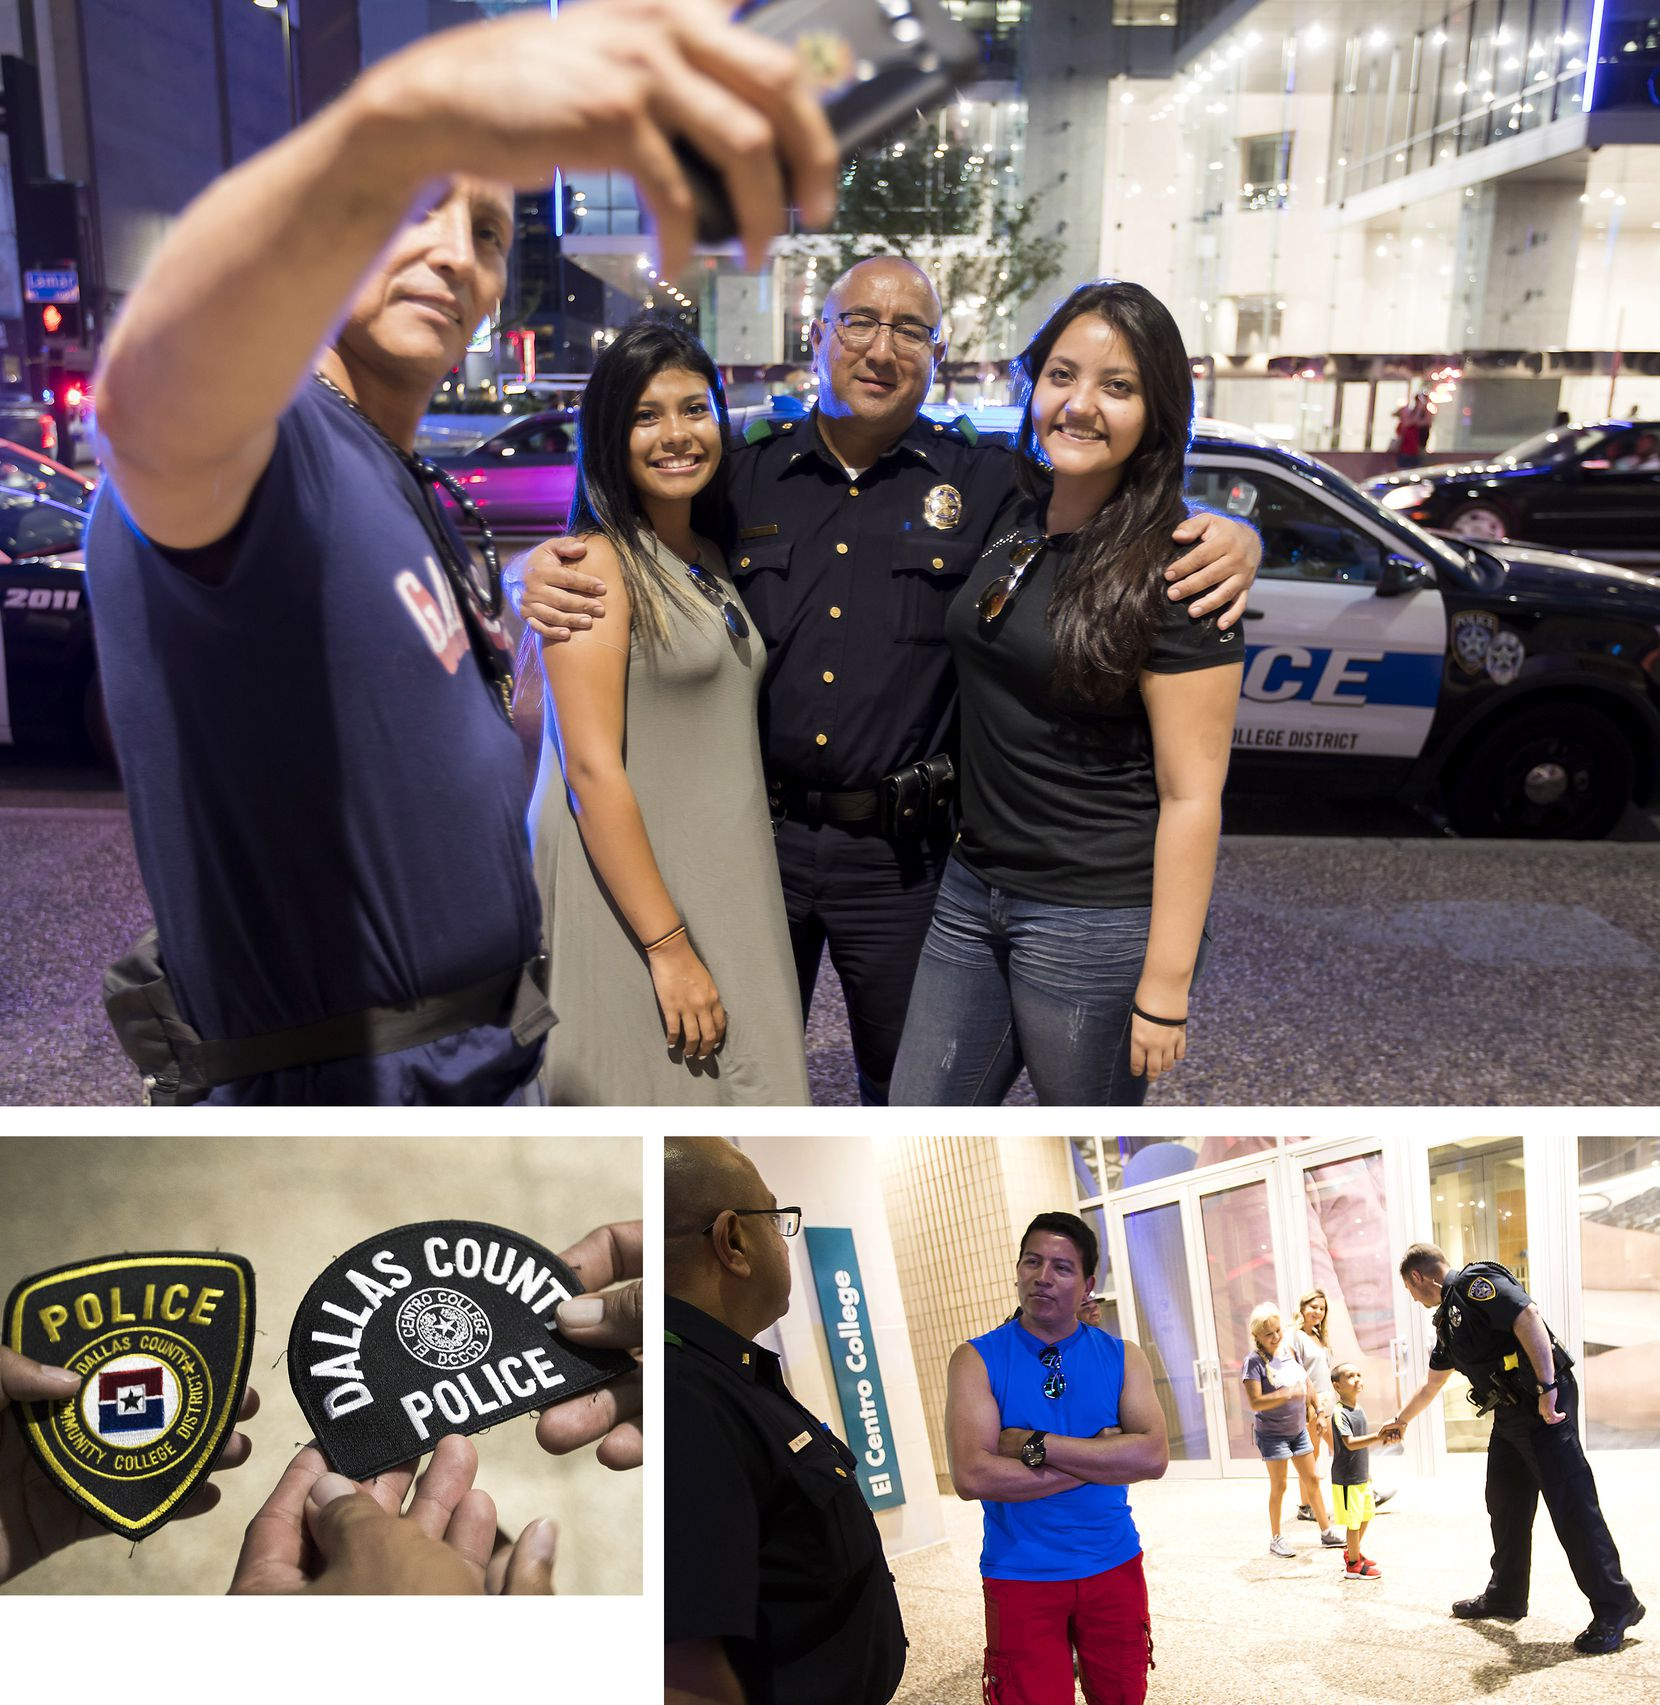 (Clockwise from top) Dallas Police Lt. Rick Rivas poses for photos with Elmer, Cesia and Brenda Contreras on the first anniversary of the attack. DCCCD Officer John Abbott shakes hands with a youngster on the sidewalk as Rivas and Elmer Contreras talk. Josh and Elmer Contreras hold police patches given to them by DCCCD Sgt. Lauri Boudreau.